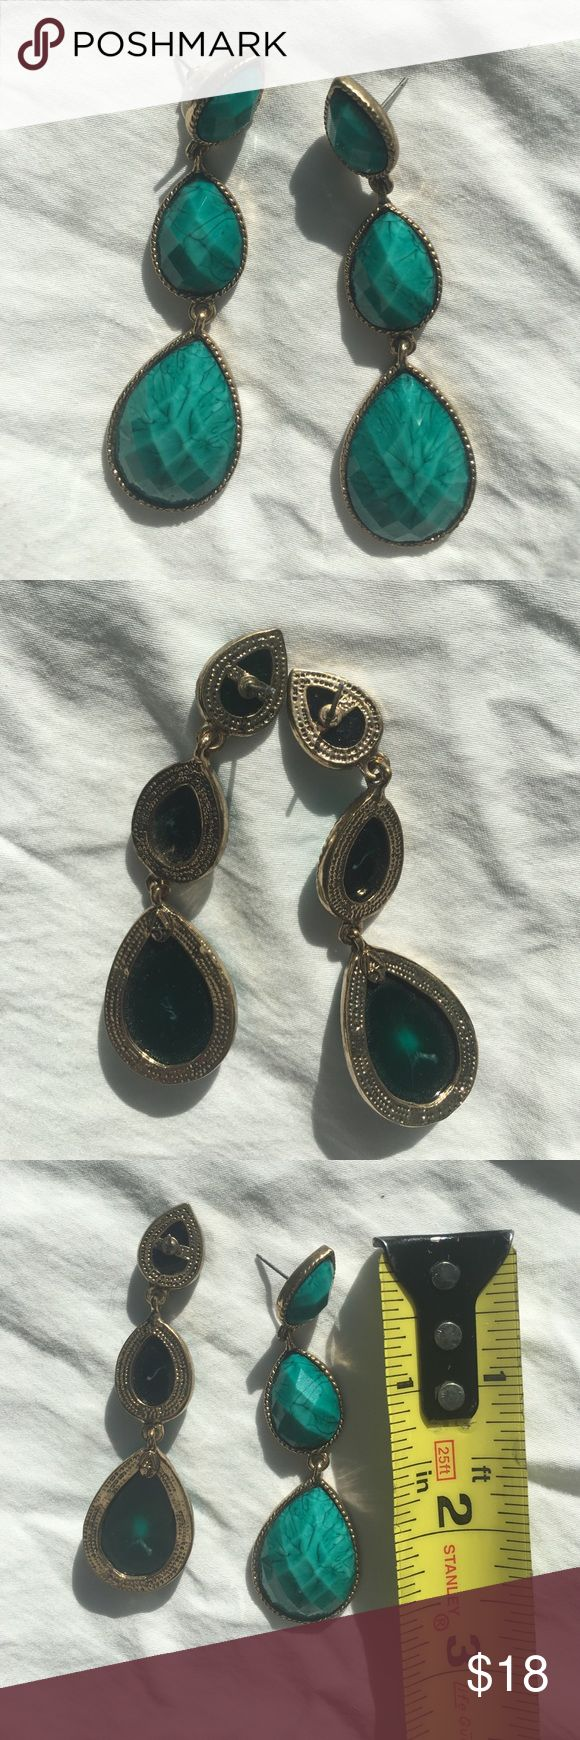 Amrita Singh statement earrings Beautiful turquoise green/blue color drop earrings. Amrita Singh Jewelry Earrings